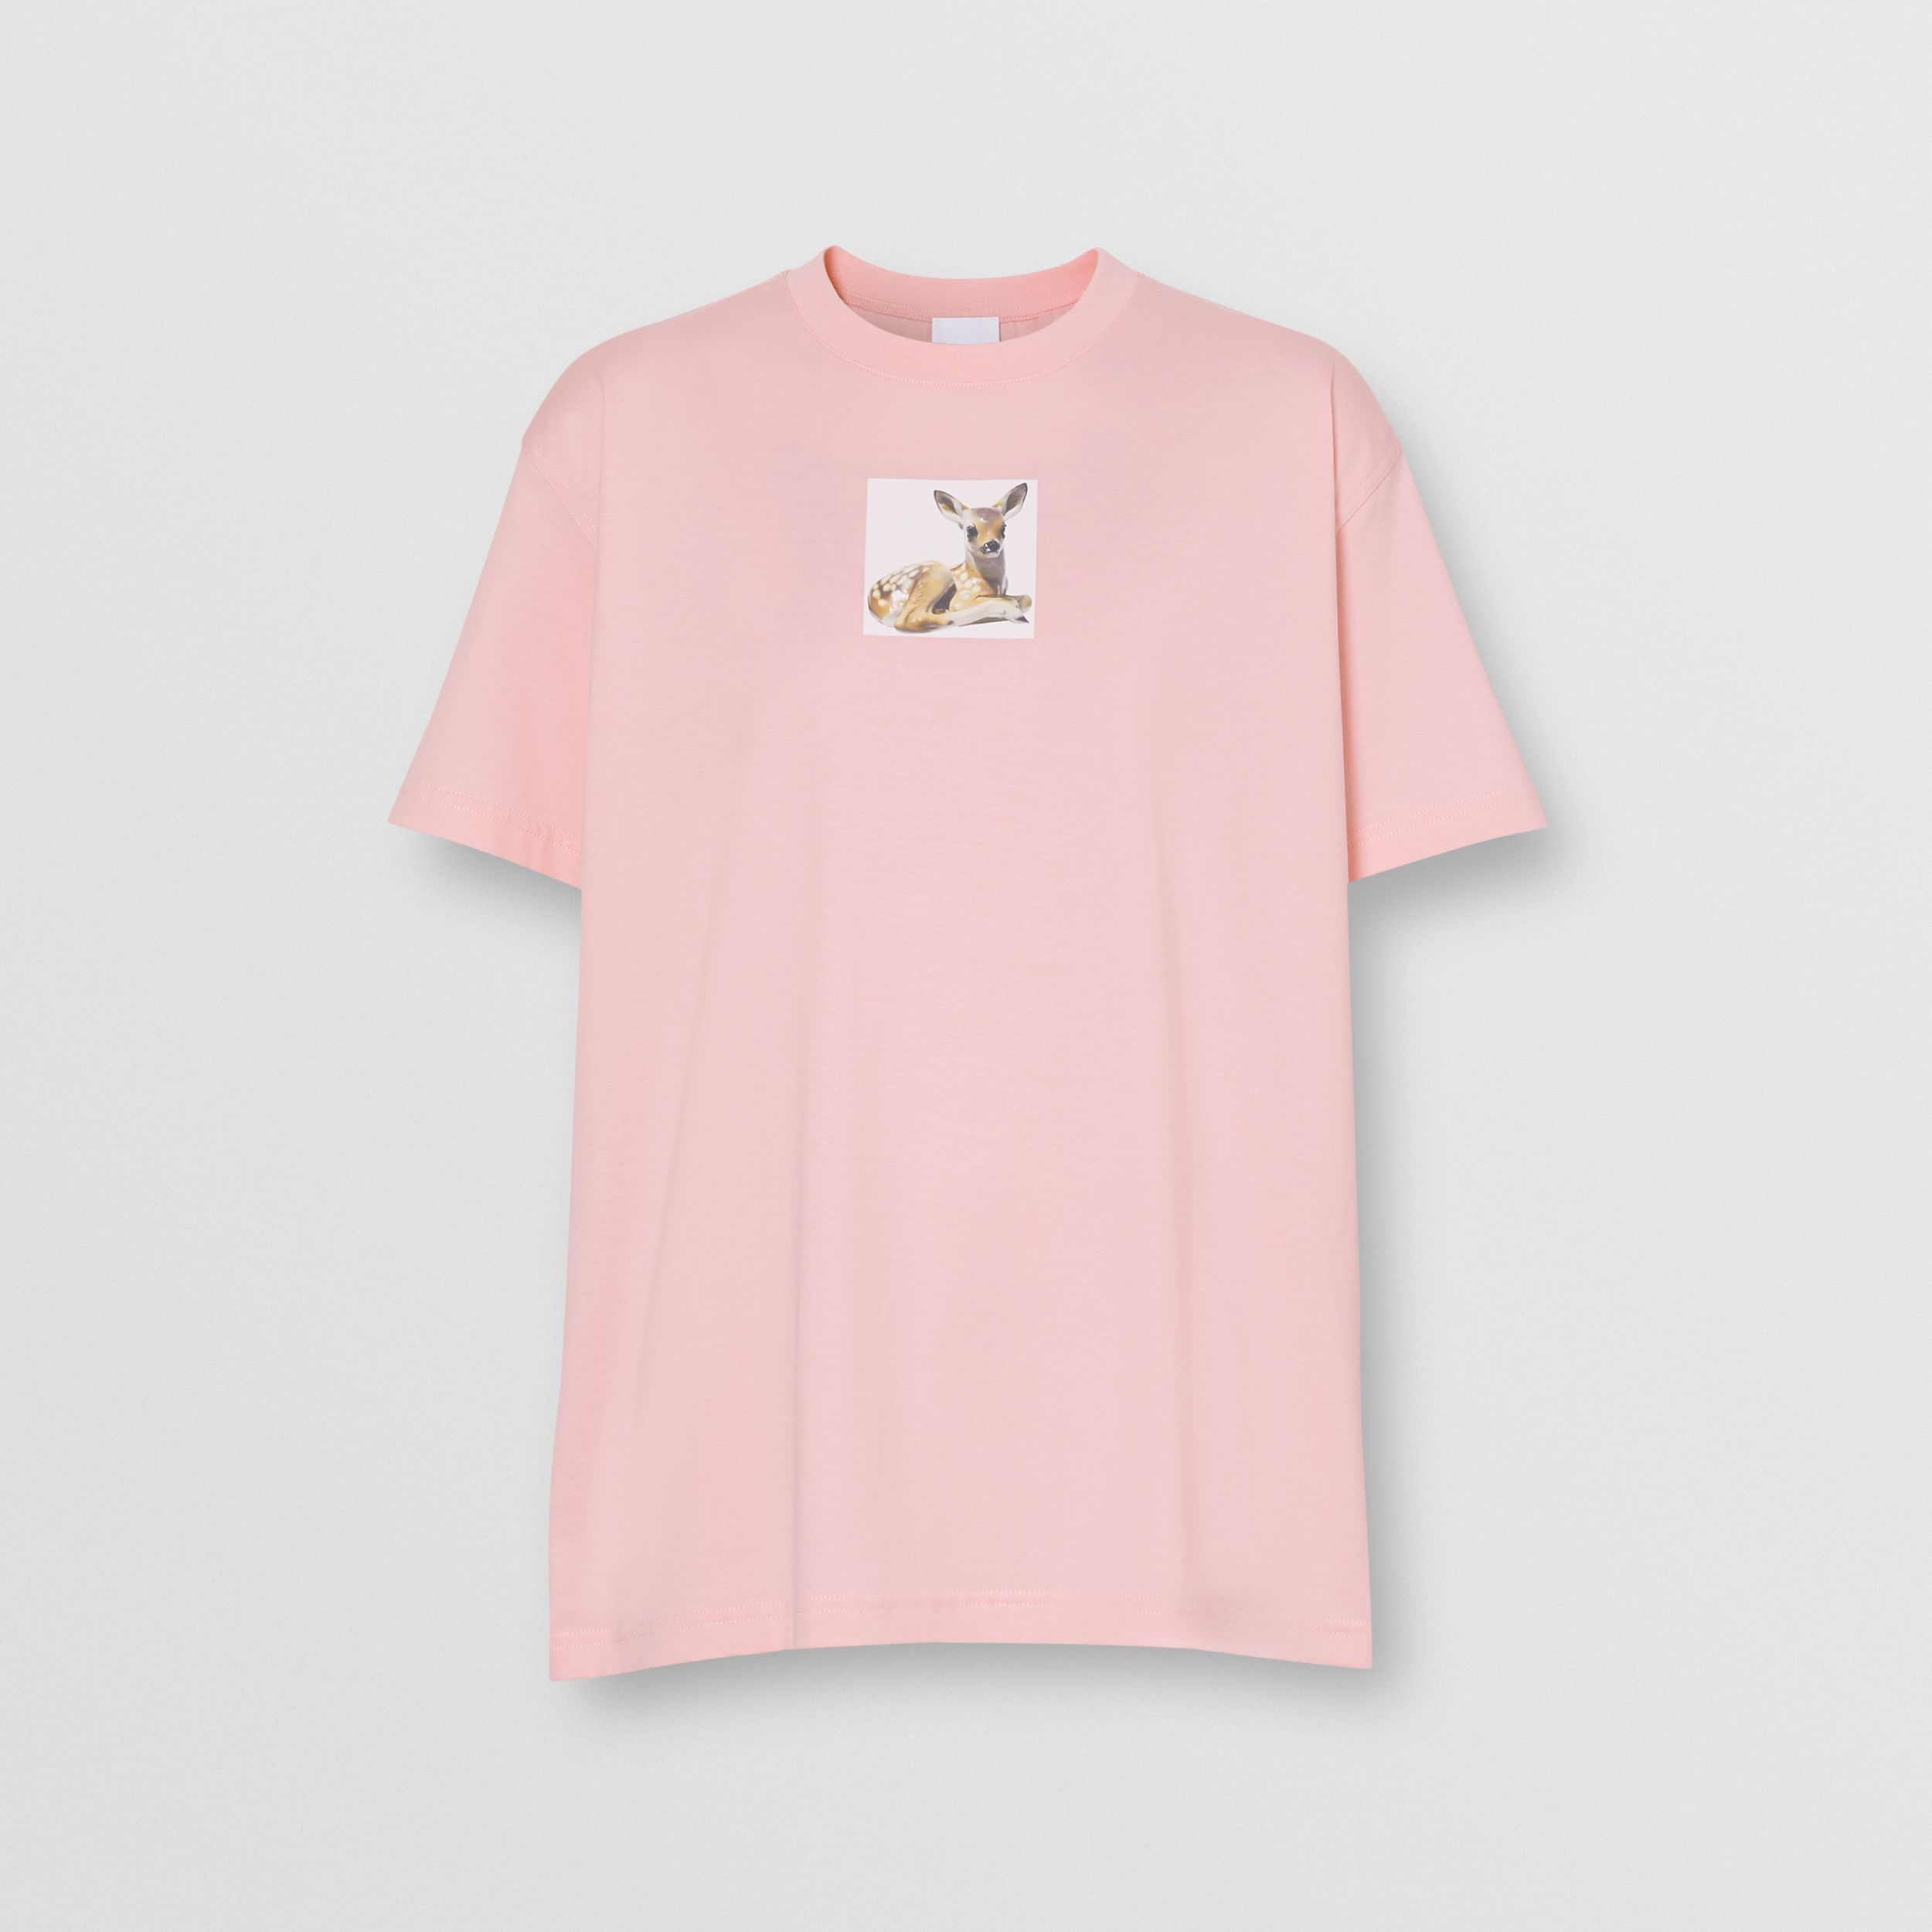 Deer Print Cotton T-shirt in Candy Pink - Women | Burberry - 4